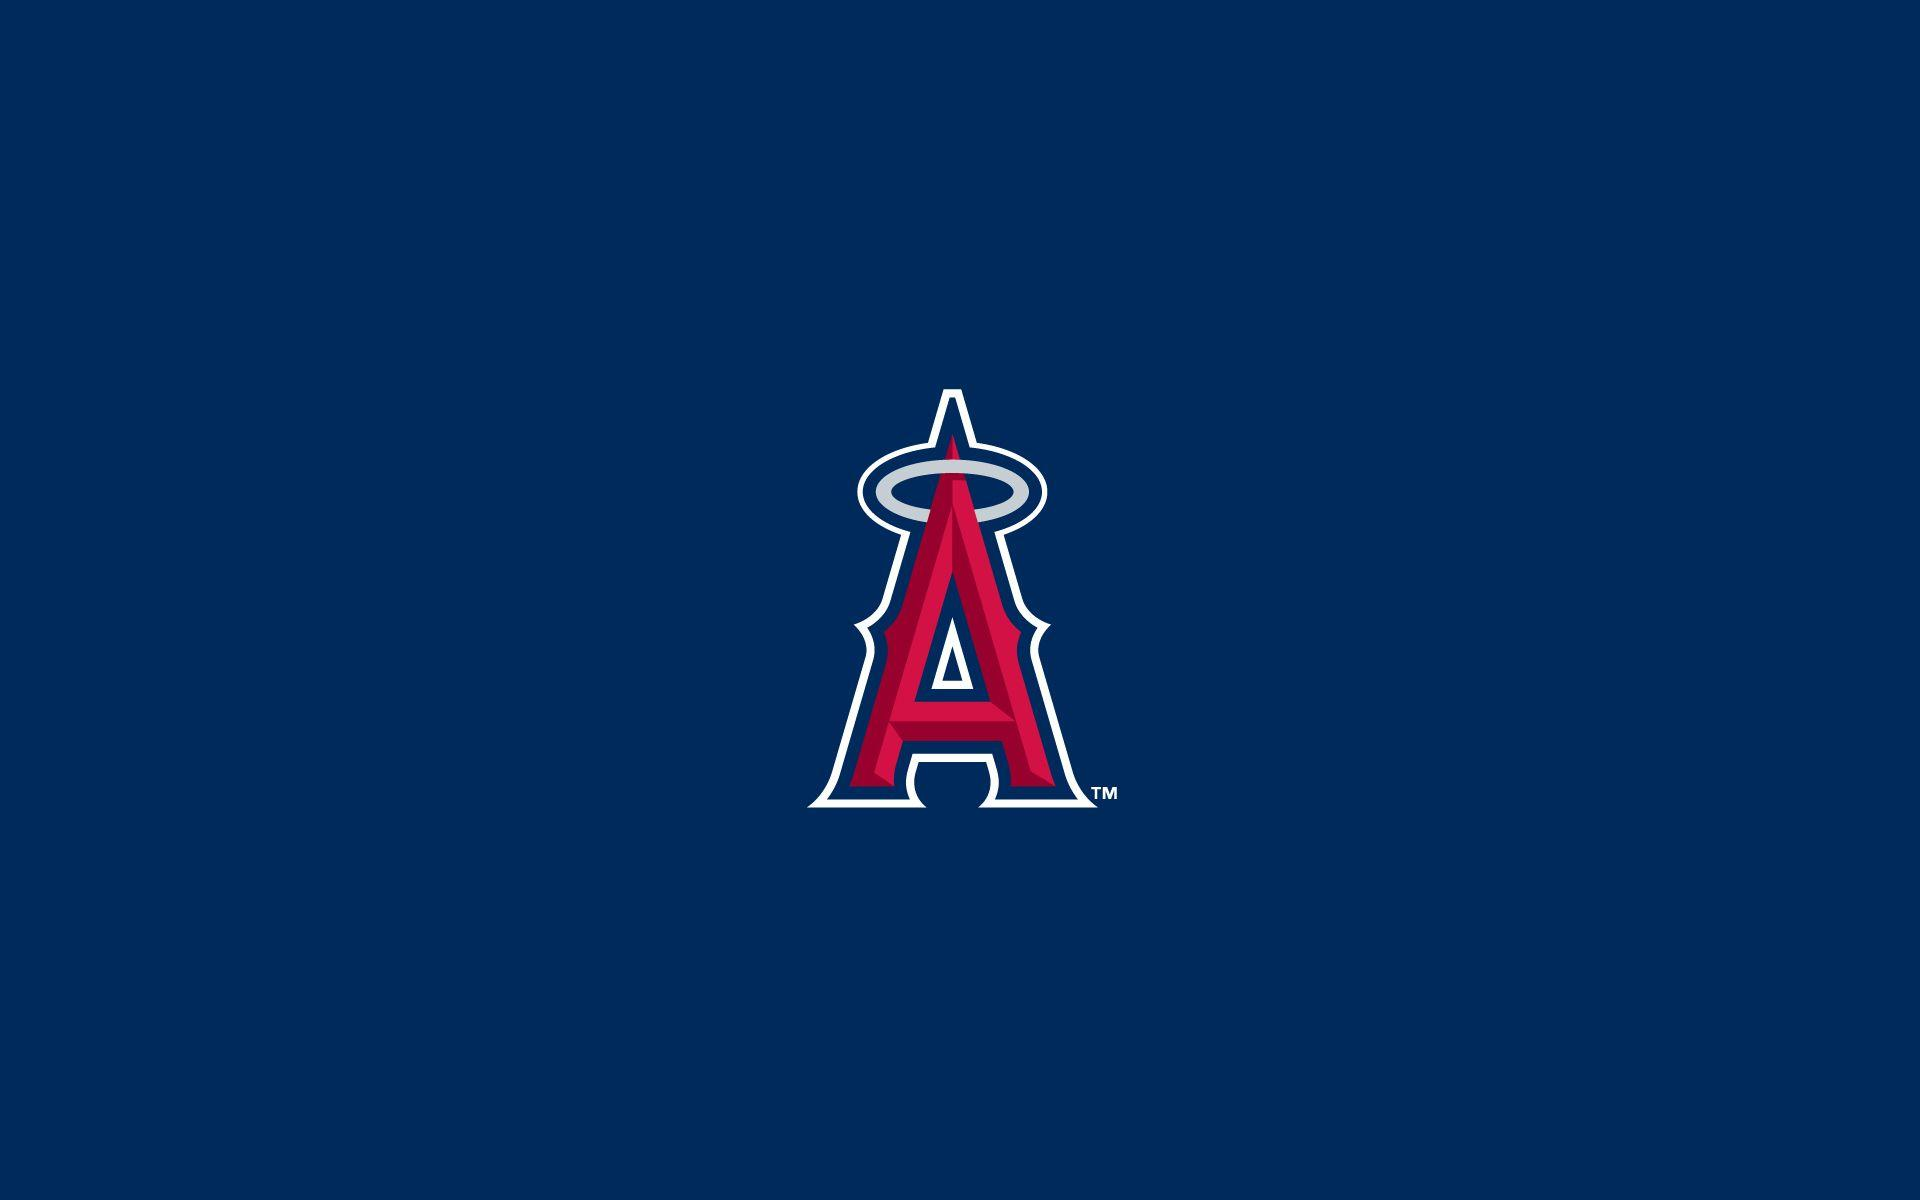 Anaheim Angels 15167 1920x1200 px ~ HDWallSource